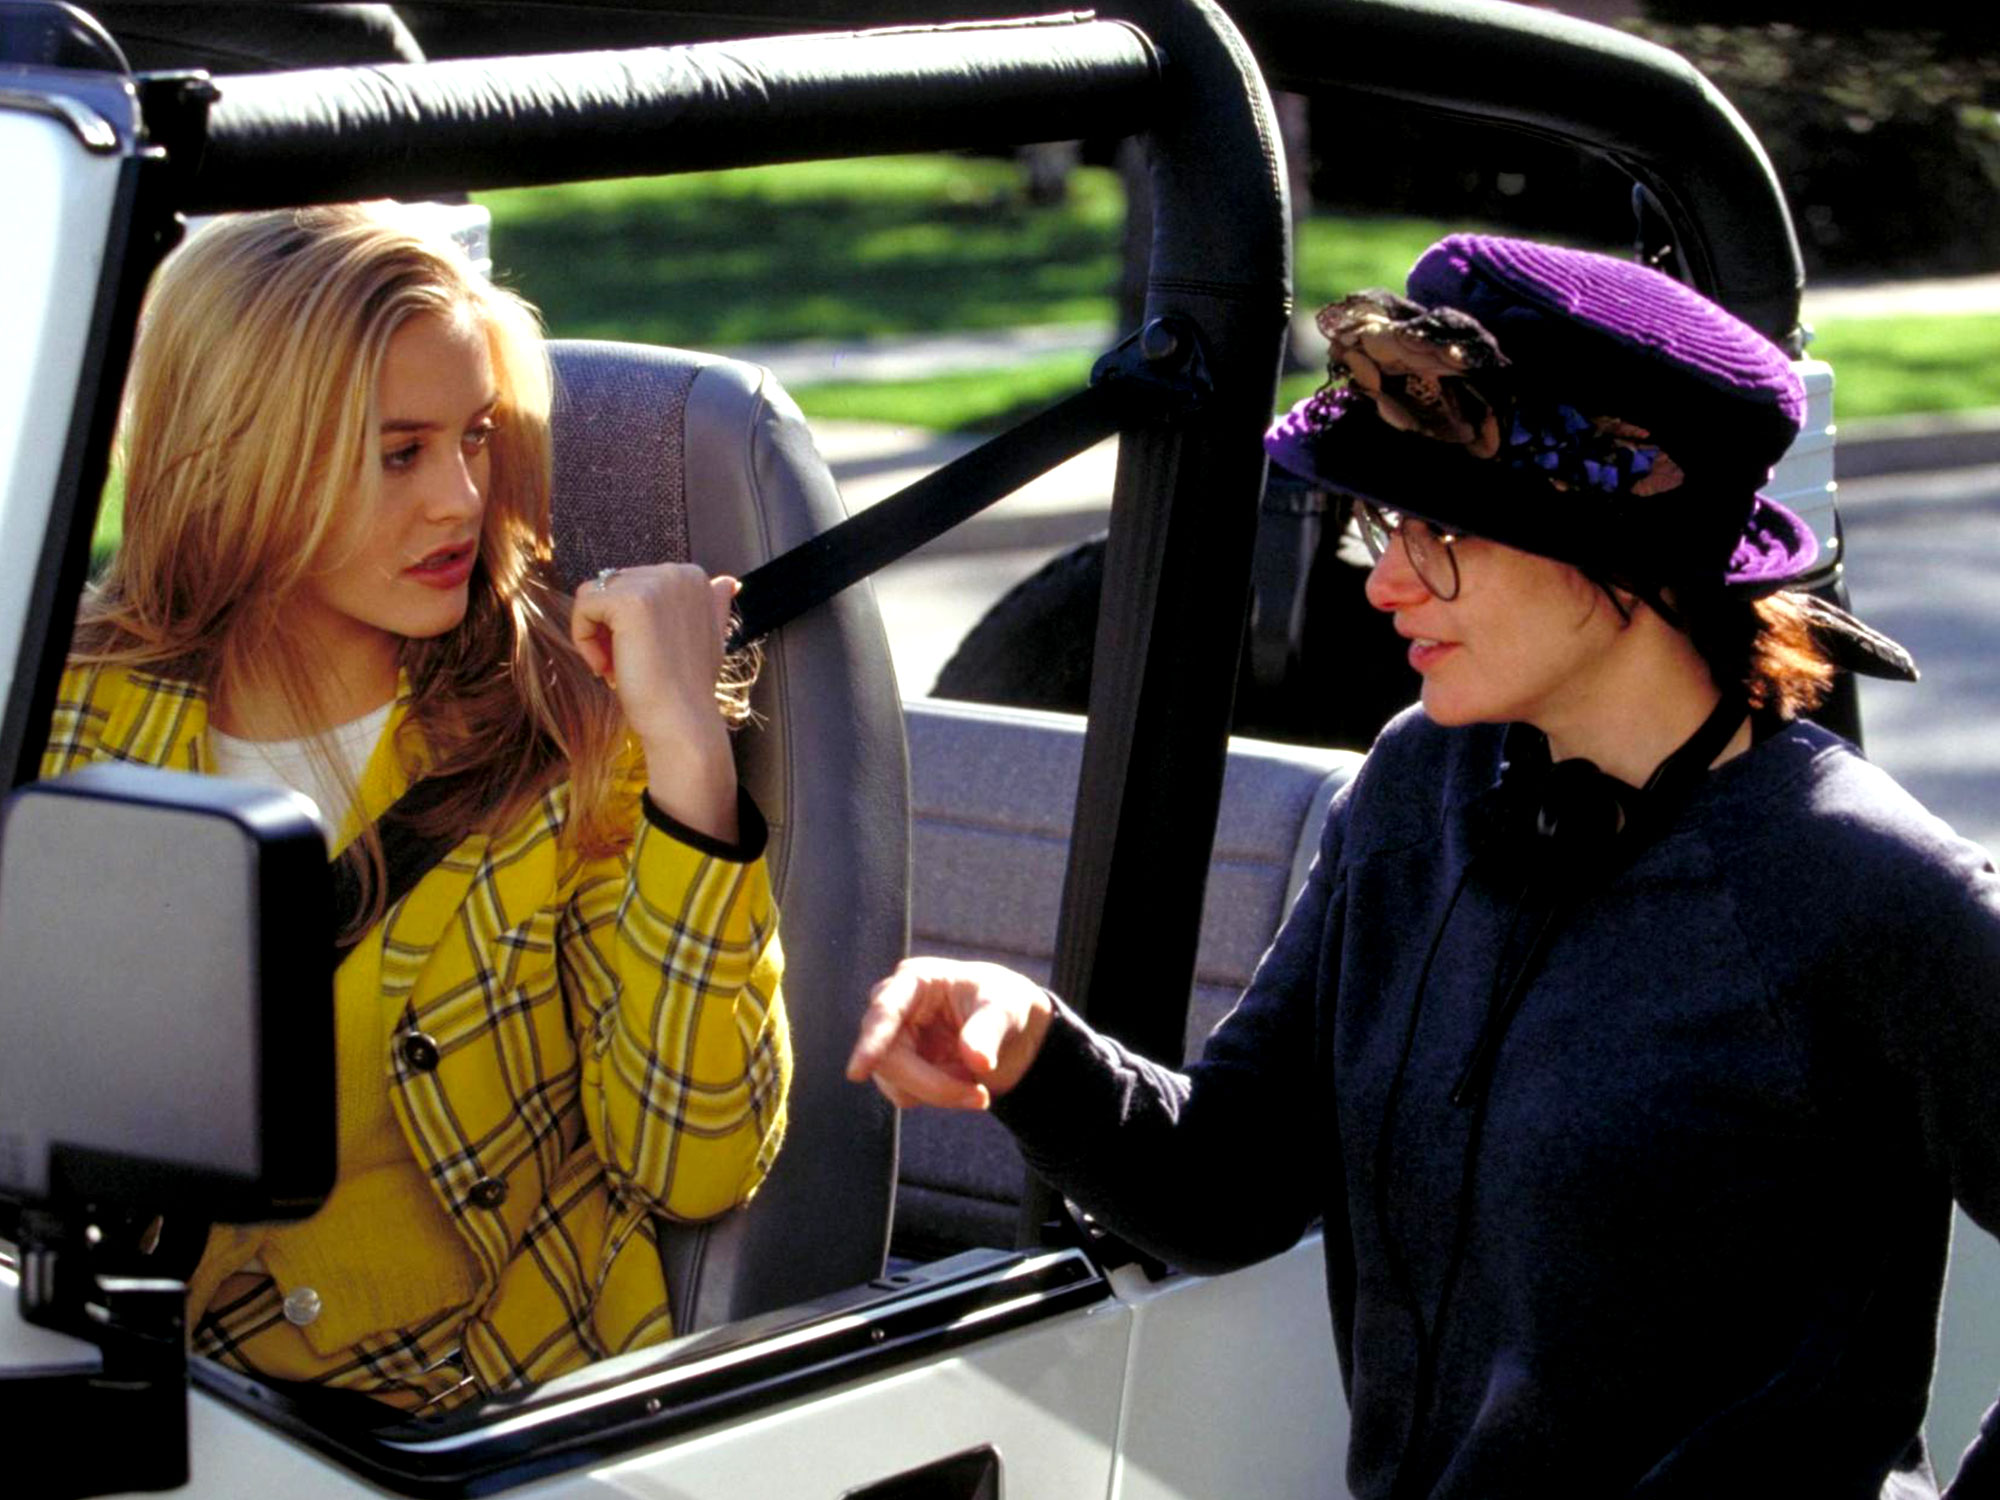 Alicia Silverstone and Amy Heckerling on the set of Clueless (1995)